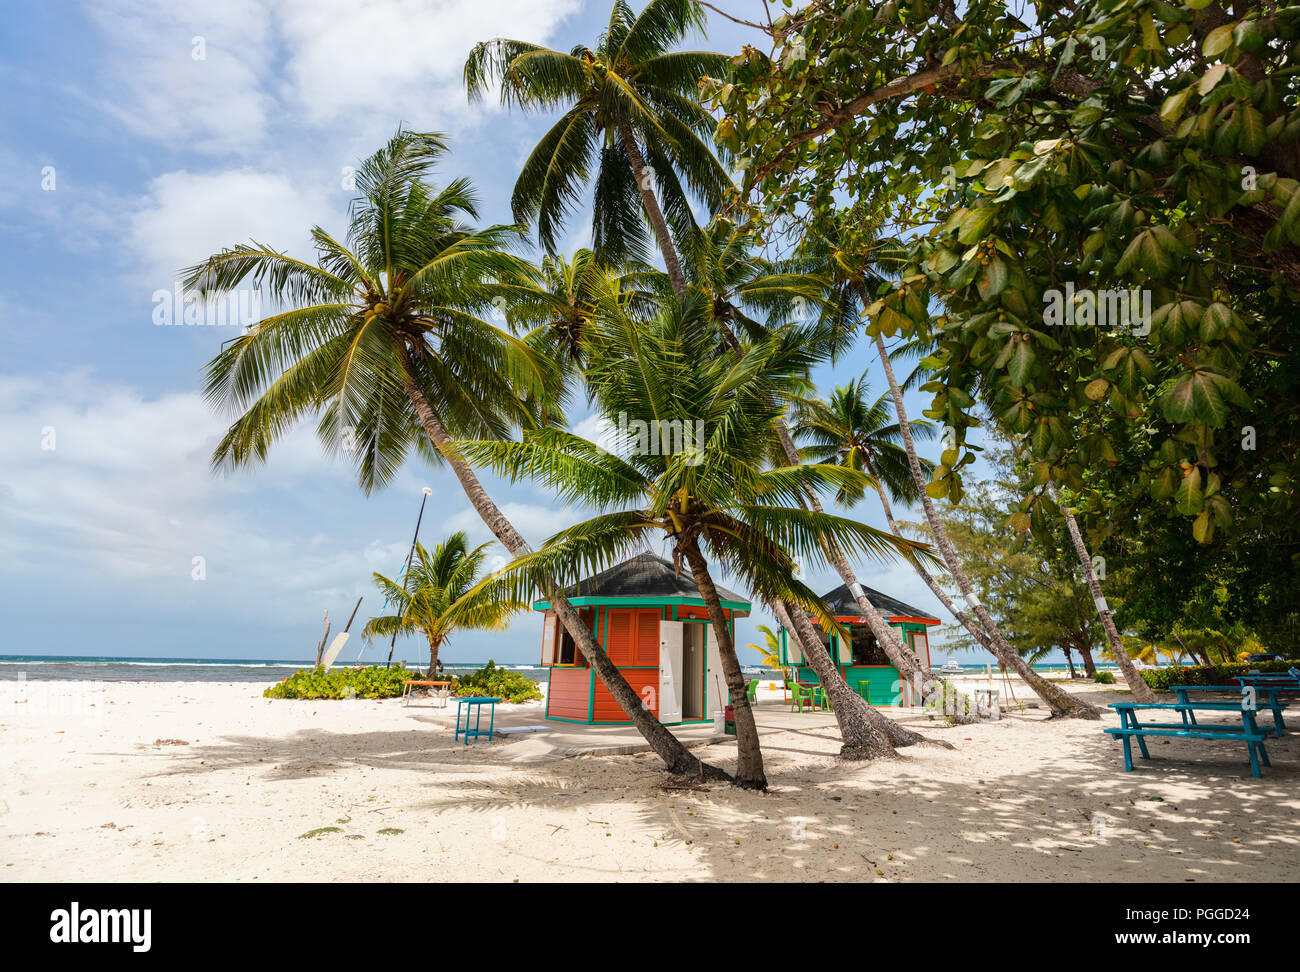 Idyllic tropical beach with white sand, palm trees and turquoise ocean water on Barbados island in Caribbean - Stock Image